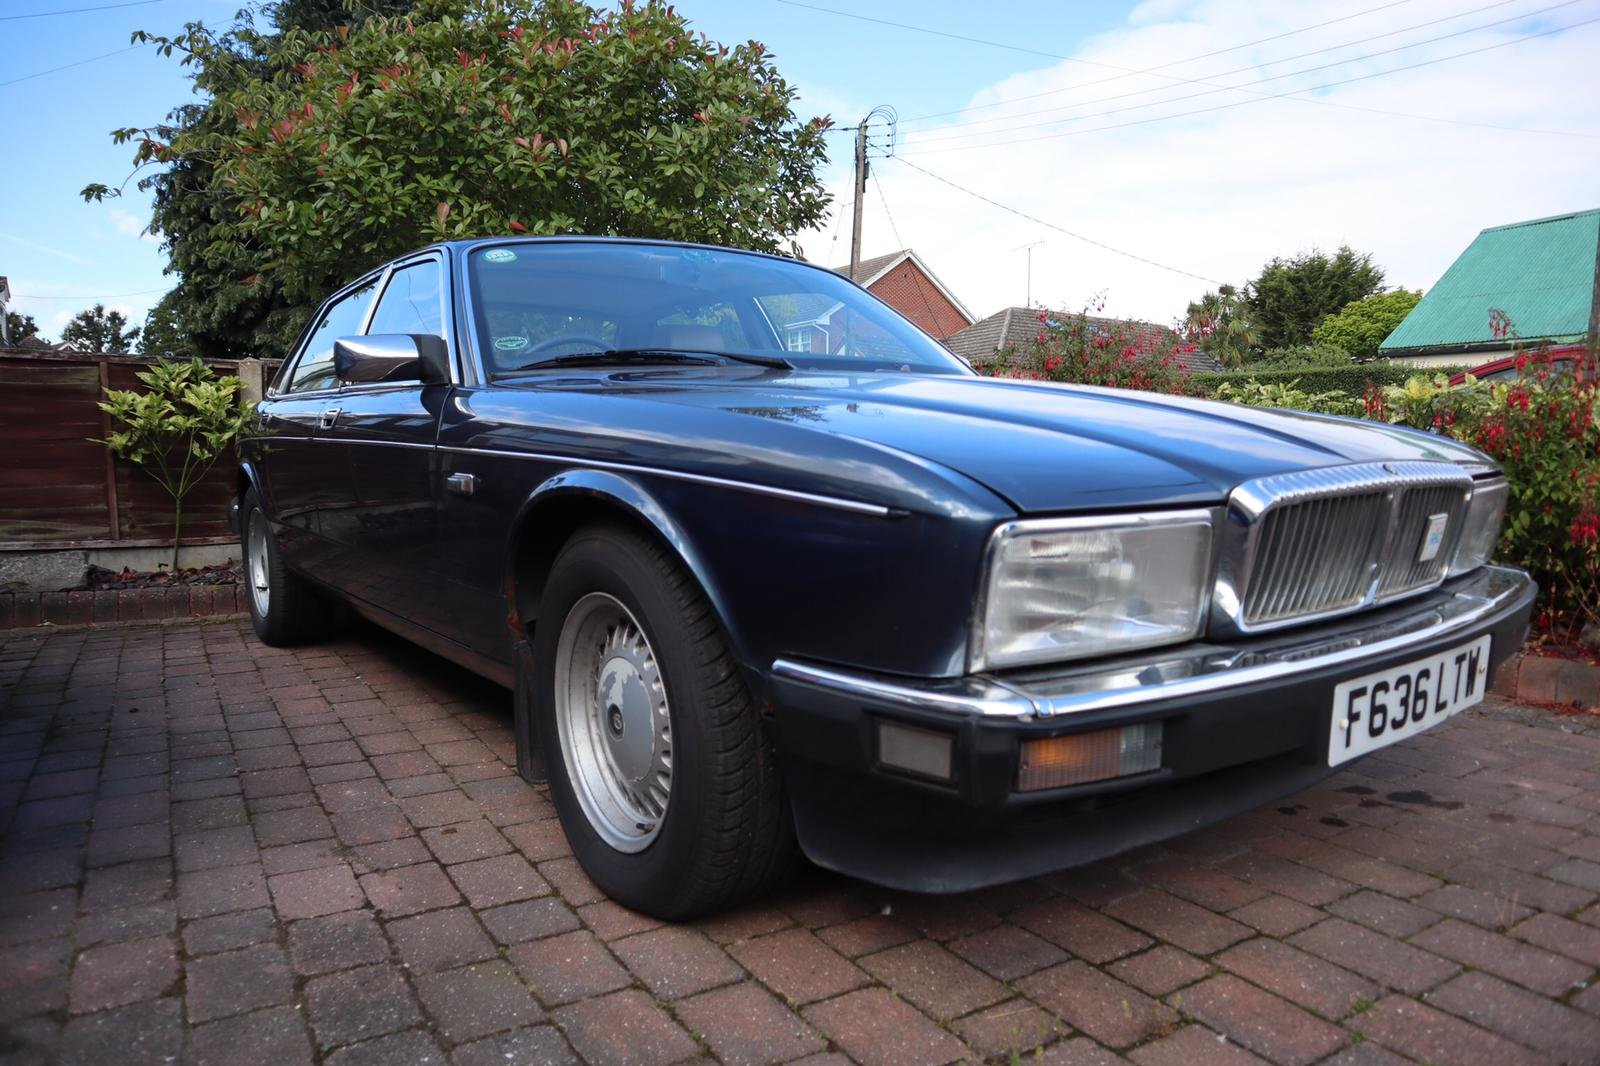 1988 XJ40  Daimler Sovereign (1 Owner from New) For Sale (picture 1 of 5)